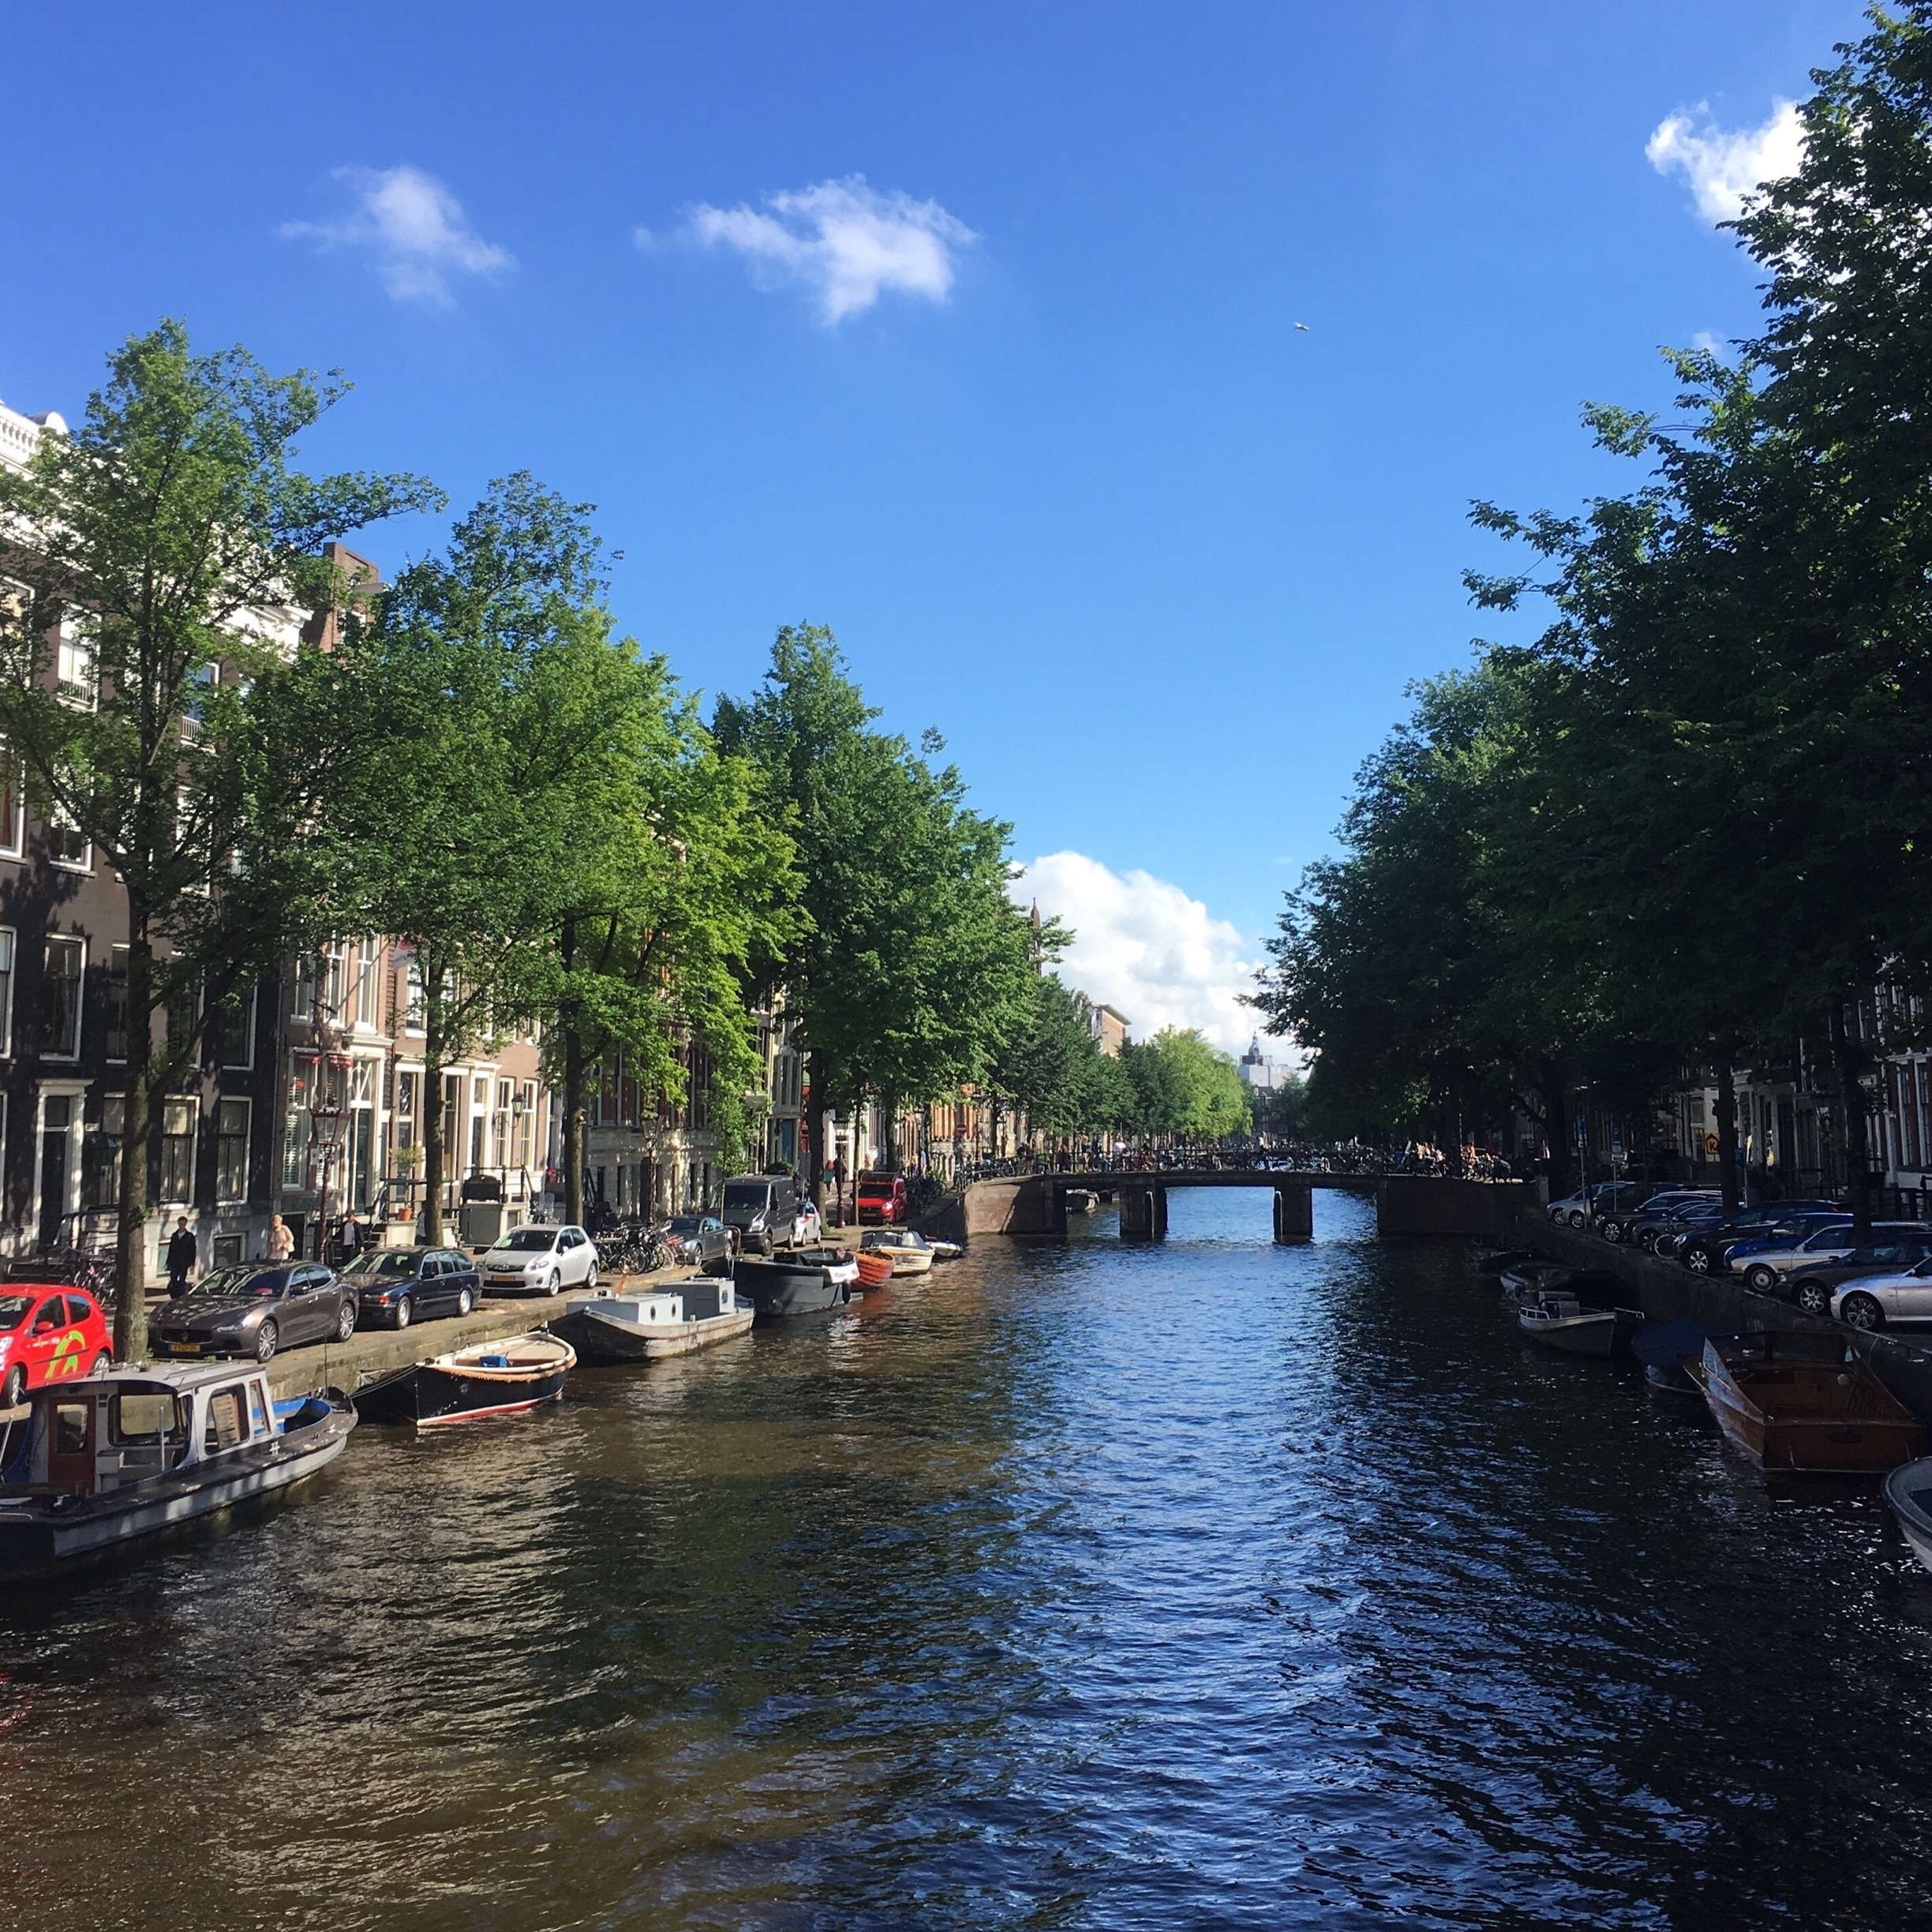 Herengracht Canal, Amsterdam, North Holland, Netherlands